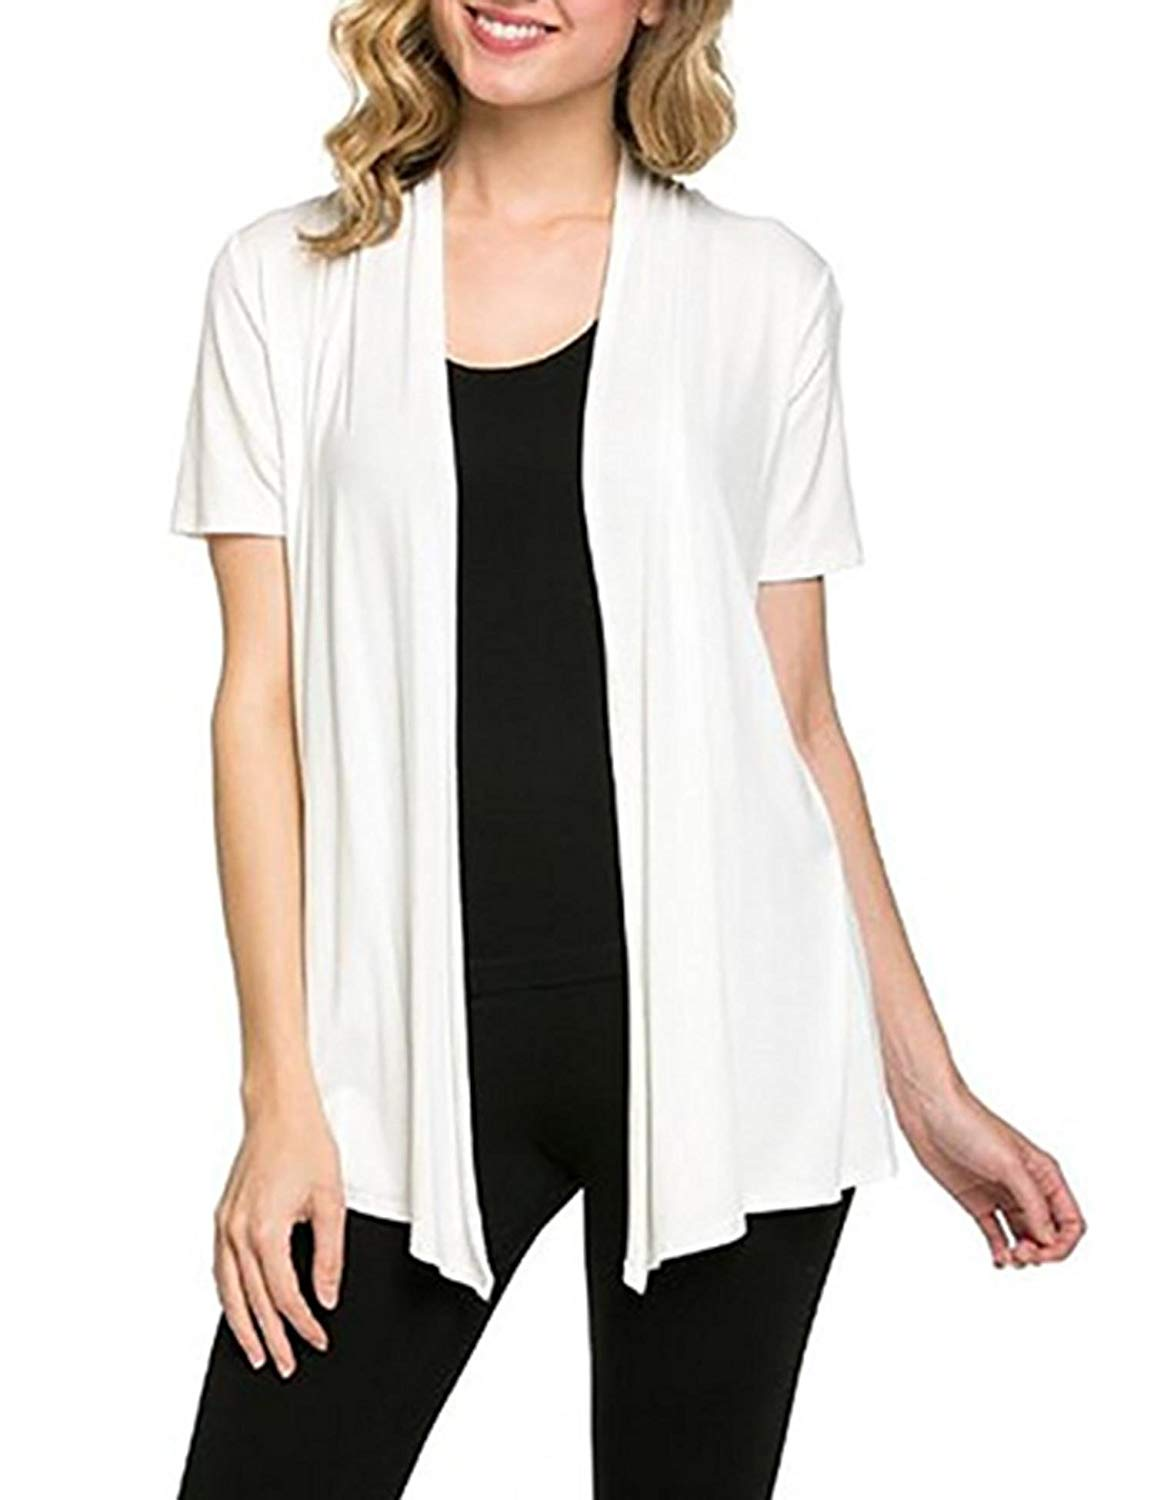 2d2a2b4463d dozenla White Open Cardigan Drape Front Cardigans for Women Summer Cardigans  for Women Cardigans